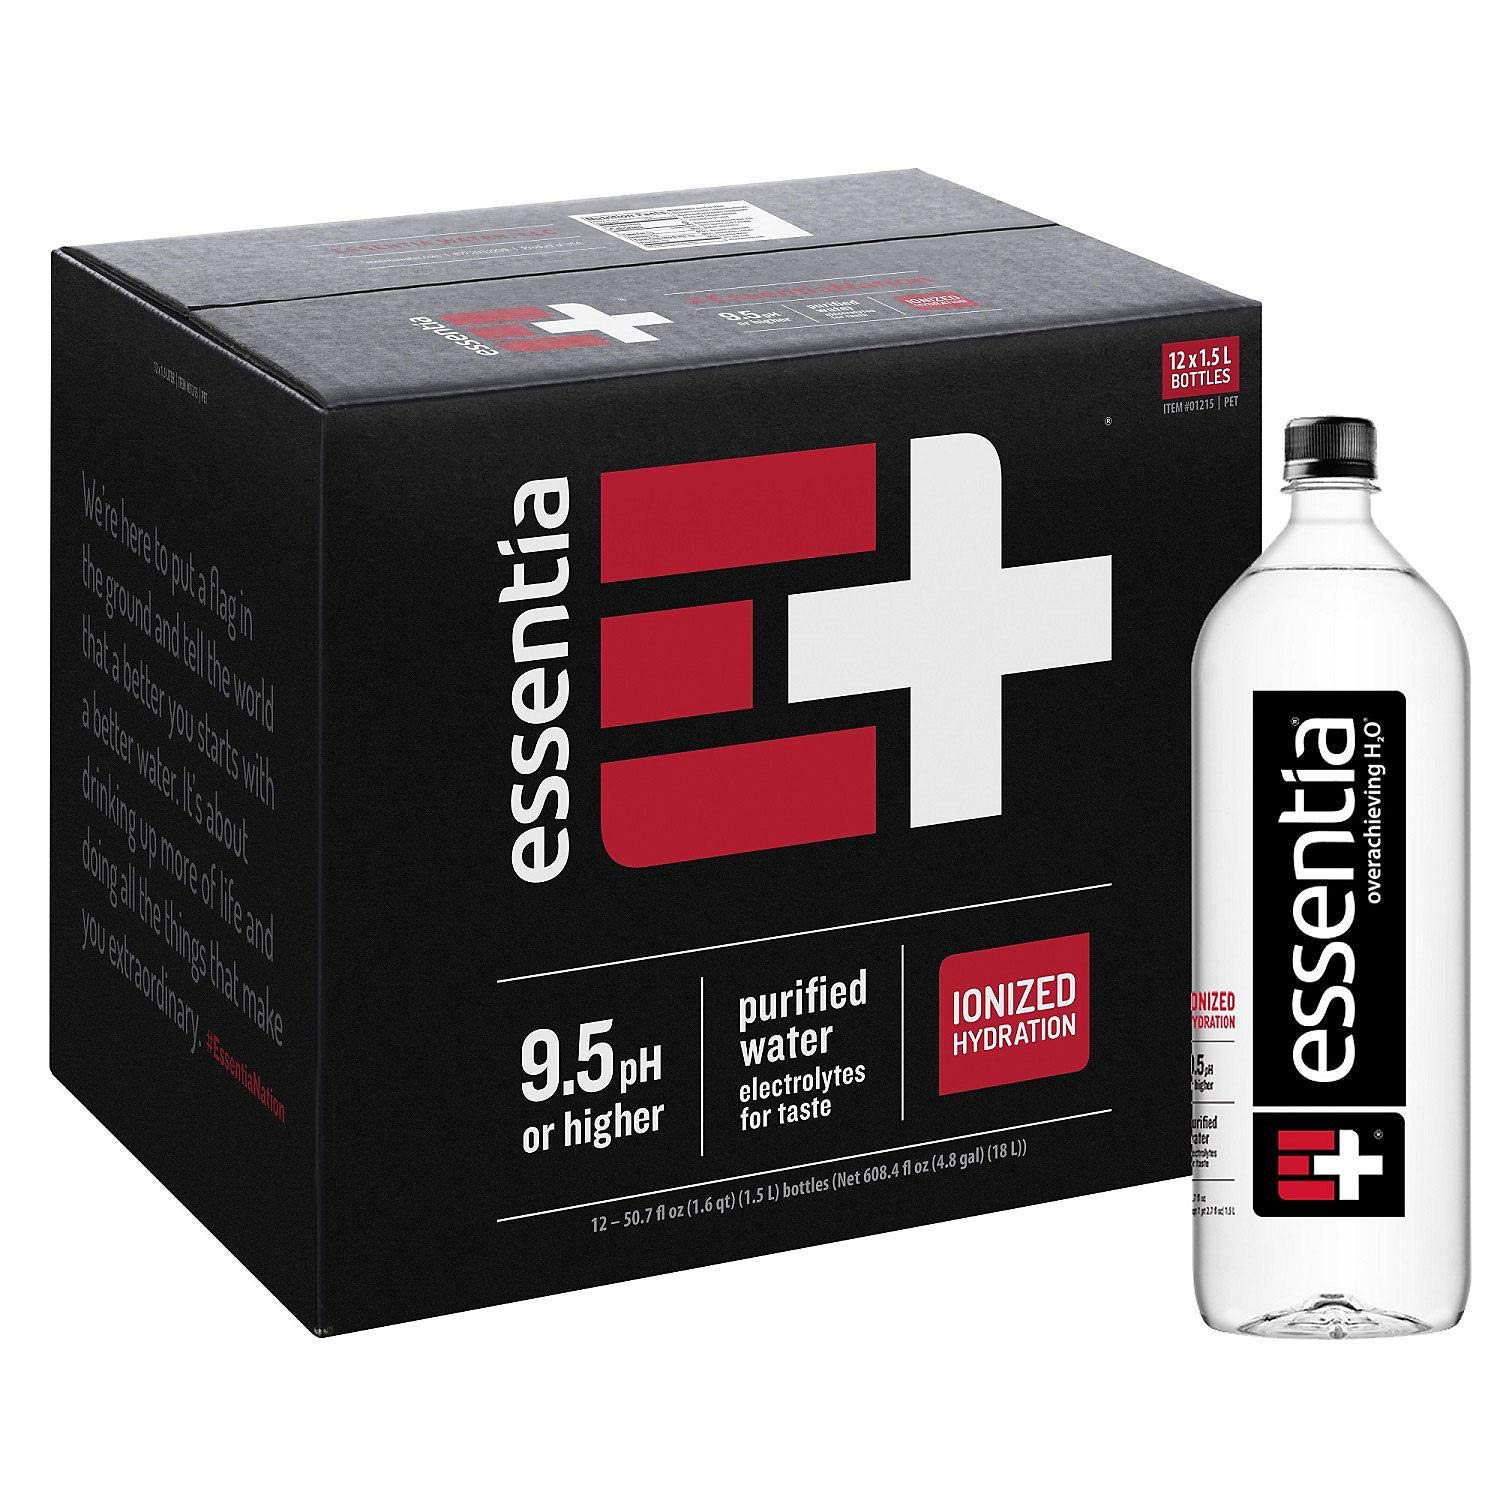 Essentia Water; 1.5-Liter Bottles; Ionized and Alkaline Hydration; Mineral Infused with 9.5 pH or Higher; Electrolytes for Taste; Pure Drinking Water 50.7 Fl. Oz. - Pack of 36 by Essentia Water LLC